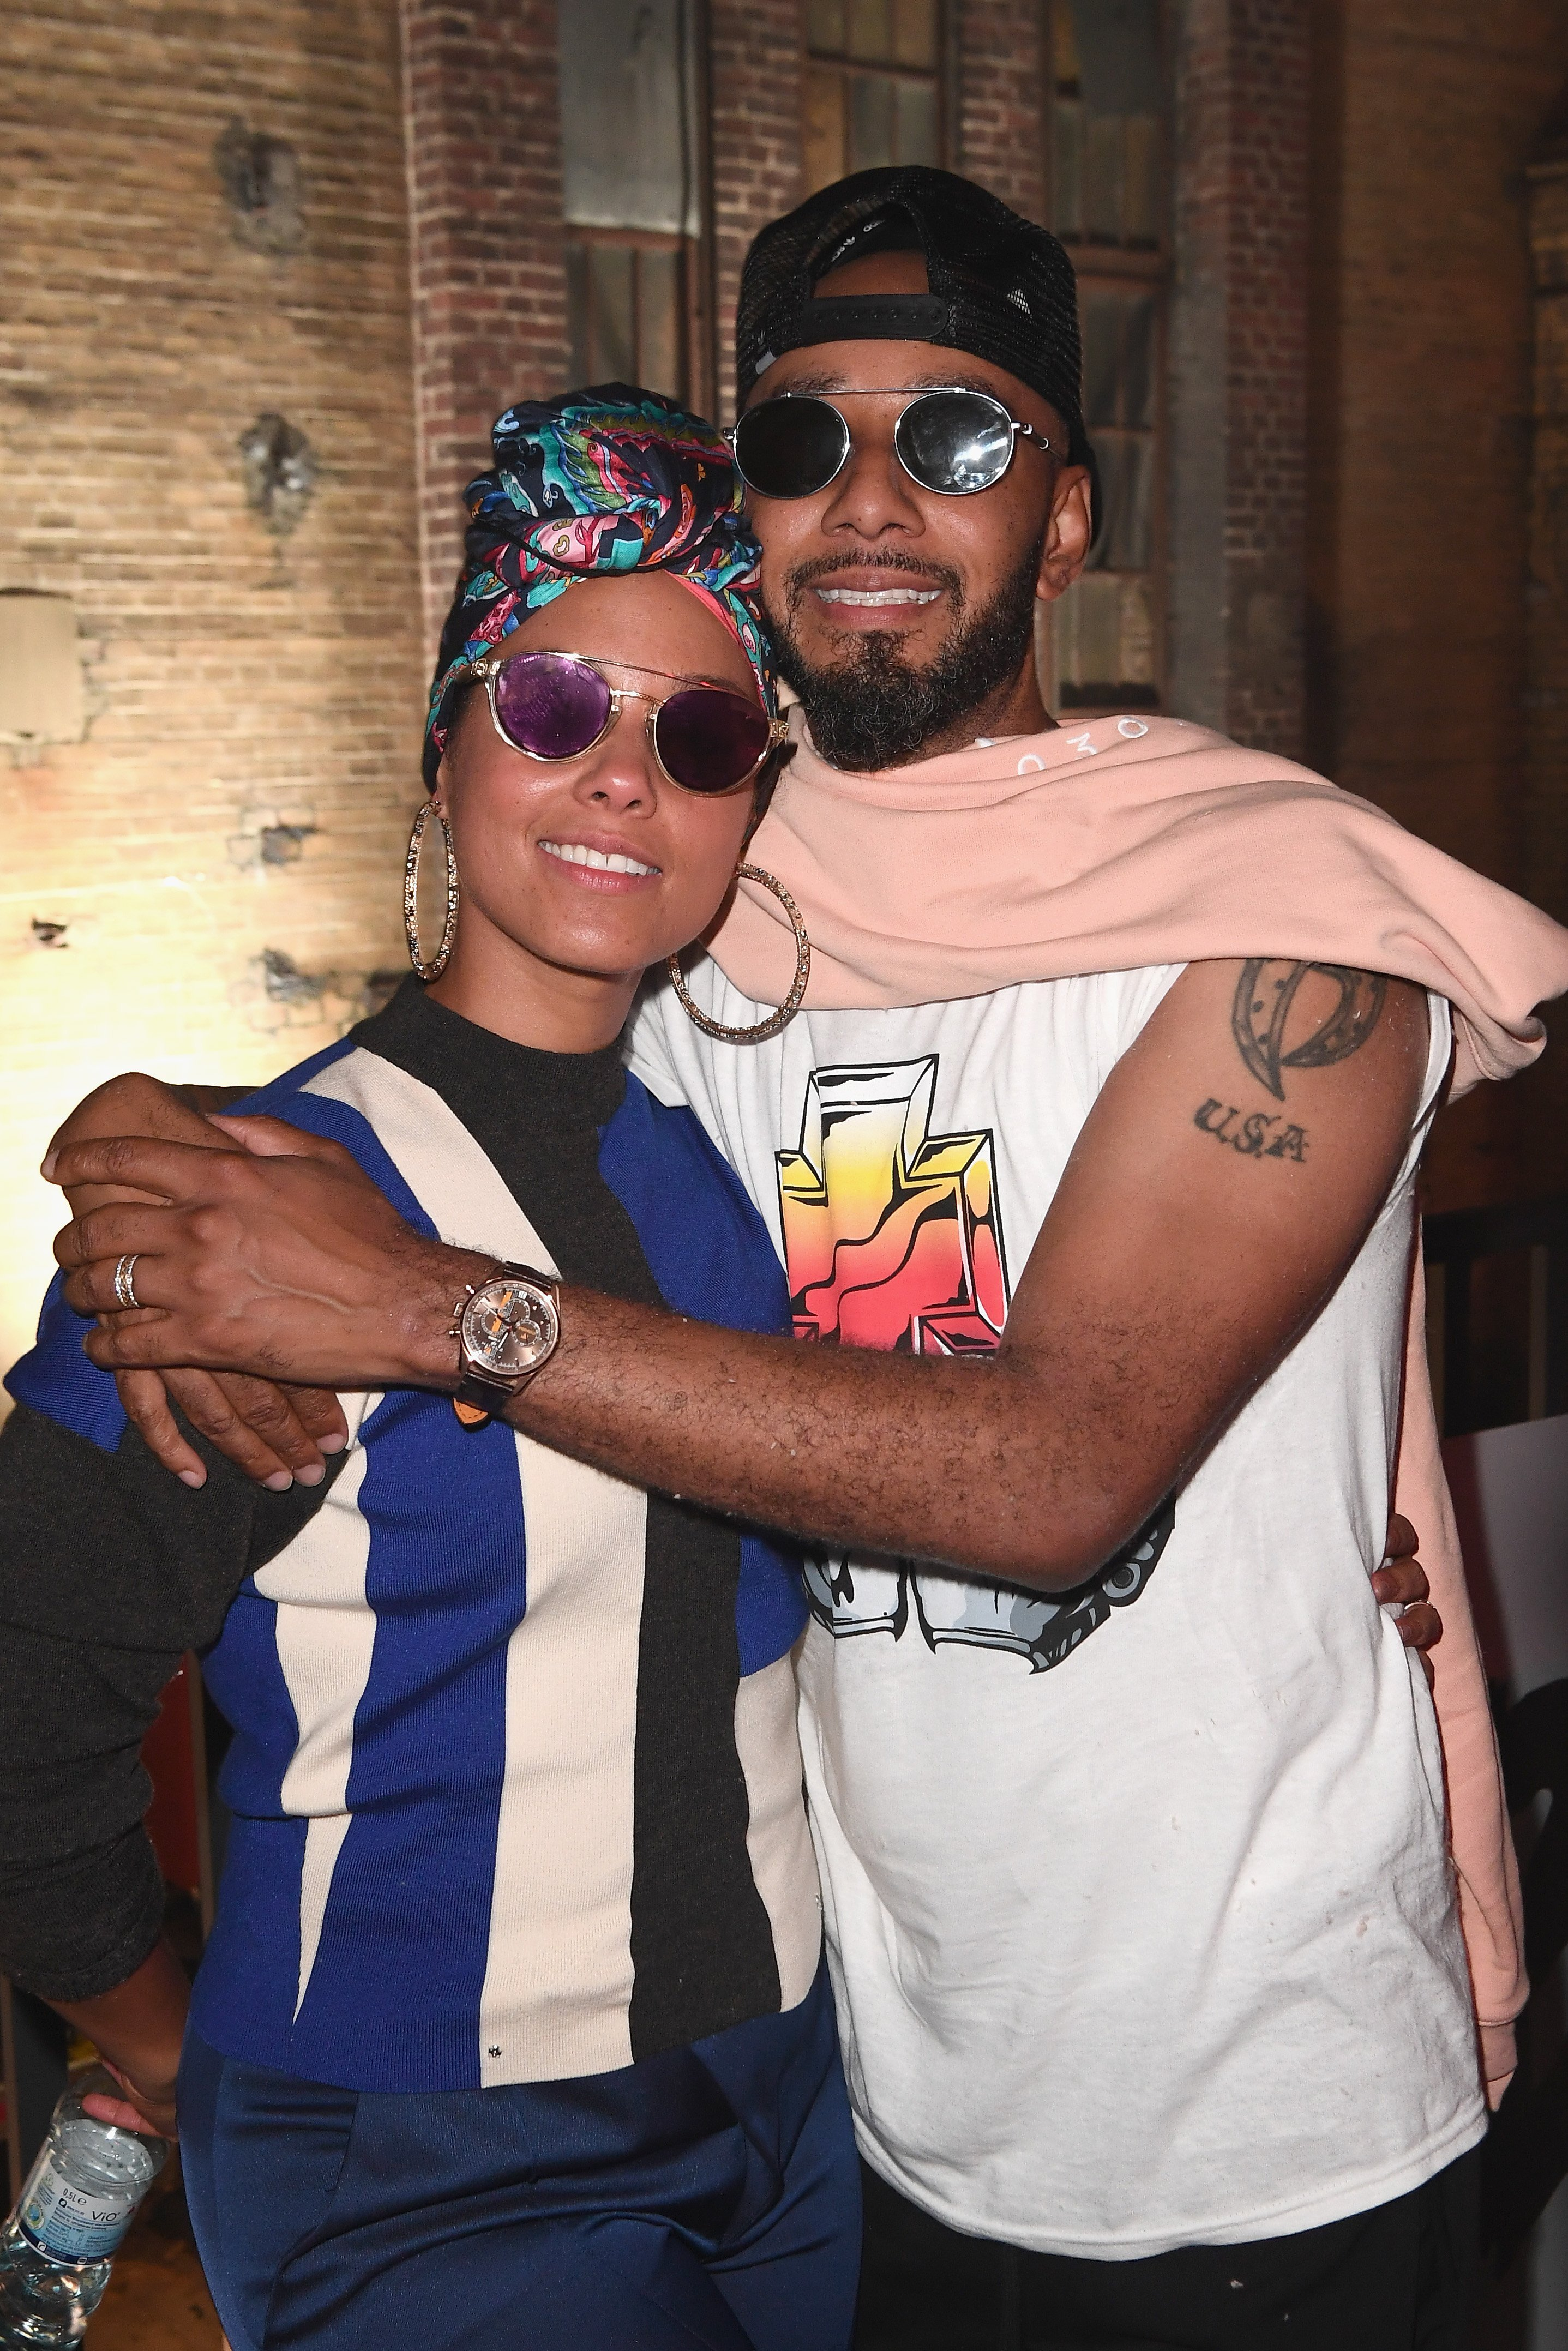 Alicia Keys and Swizz Beats at a Bacardi event in Germany in June 2017. | Photo: Getty Images